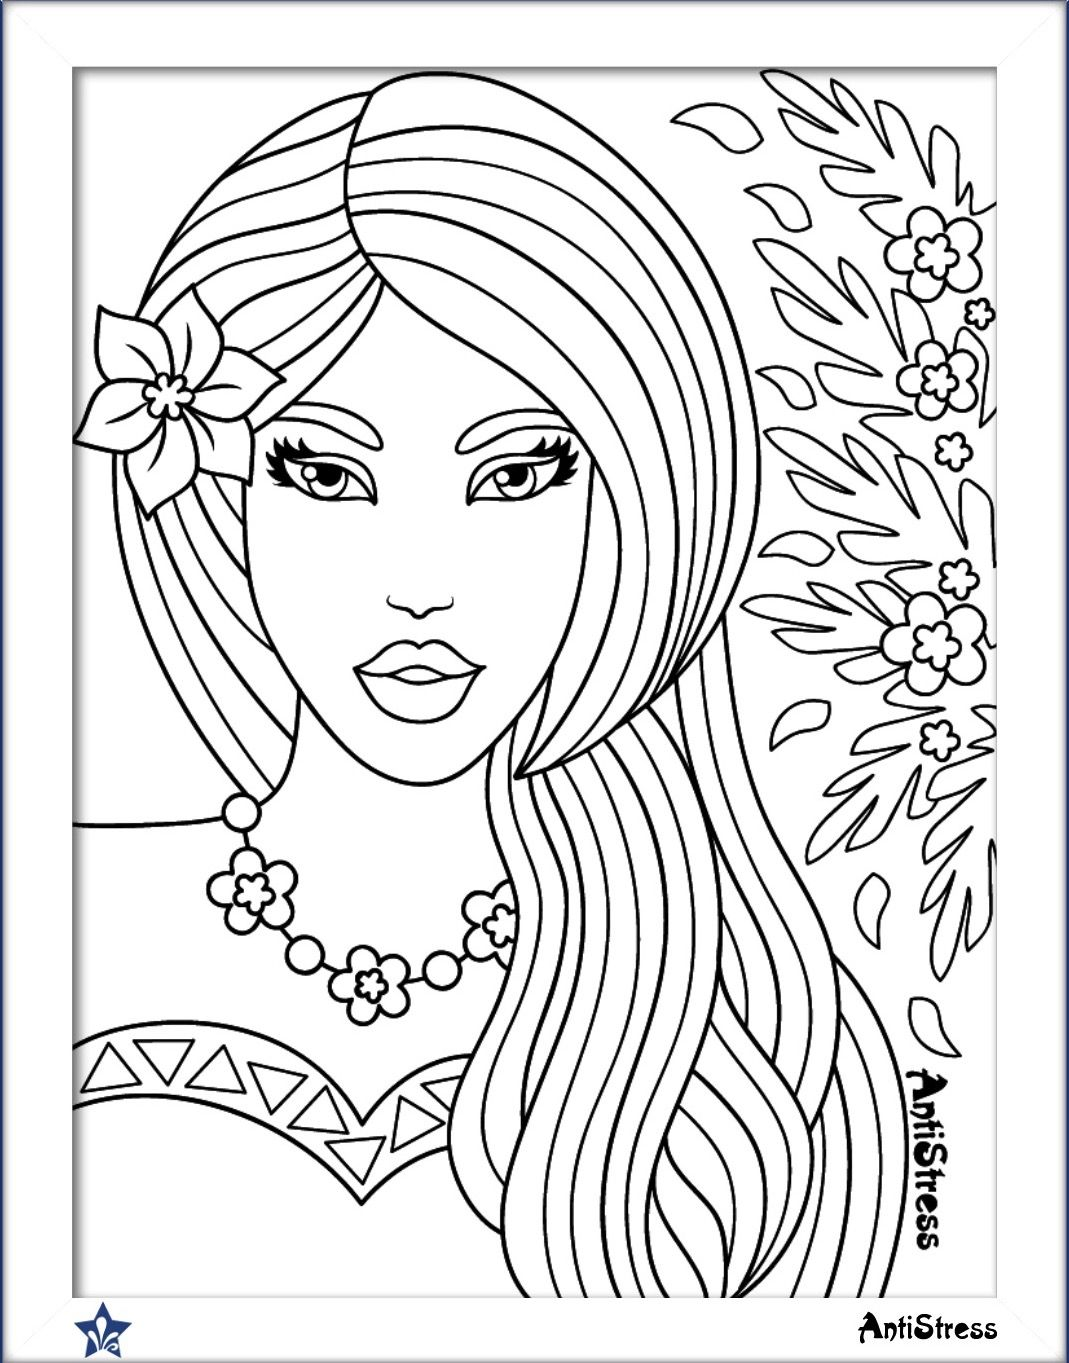 Pin de Val Wilson en Coloring pages | Pinterest | Dibujos para ...